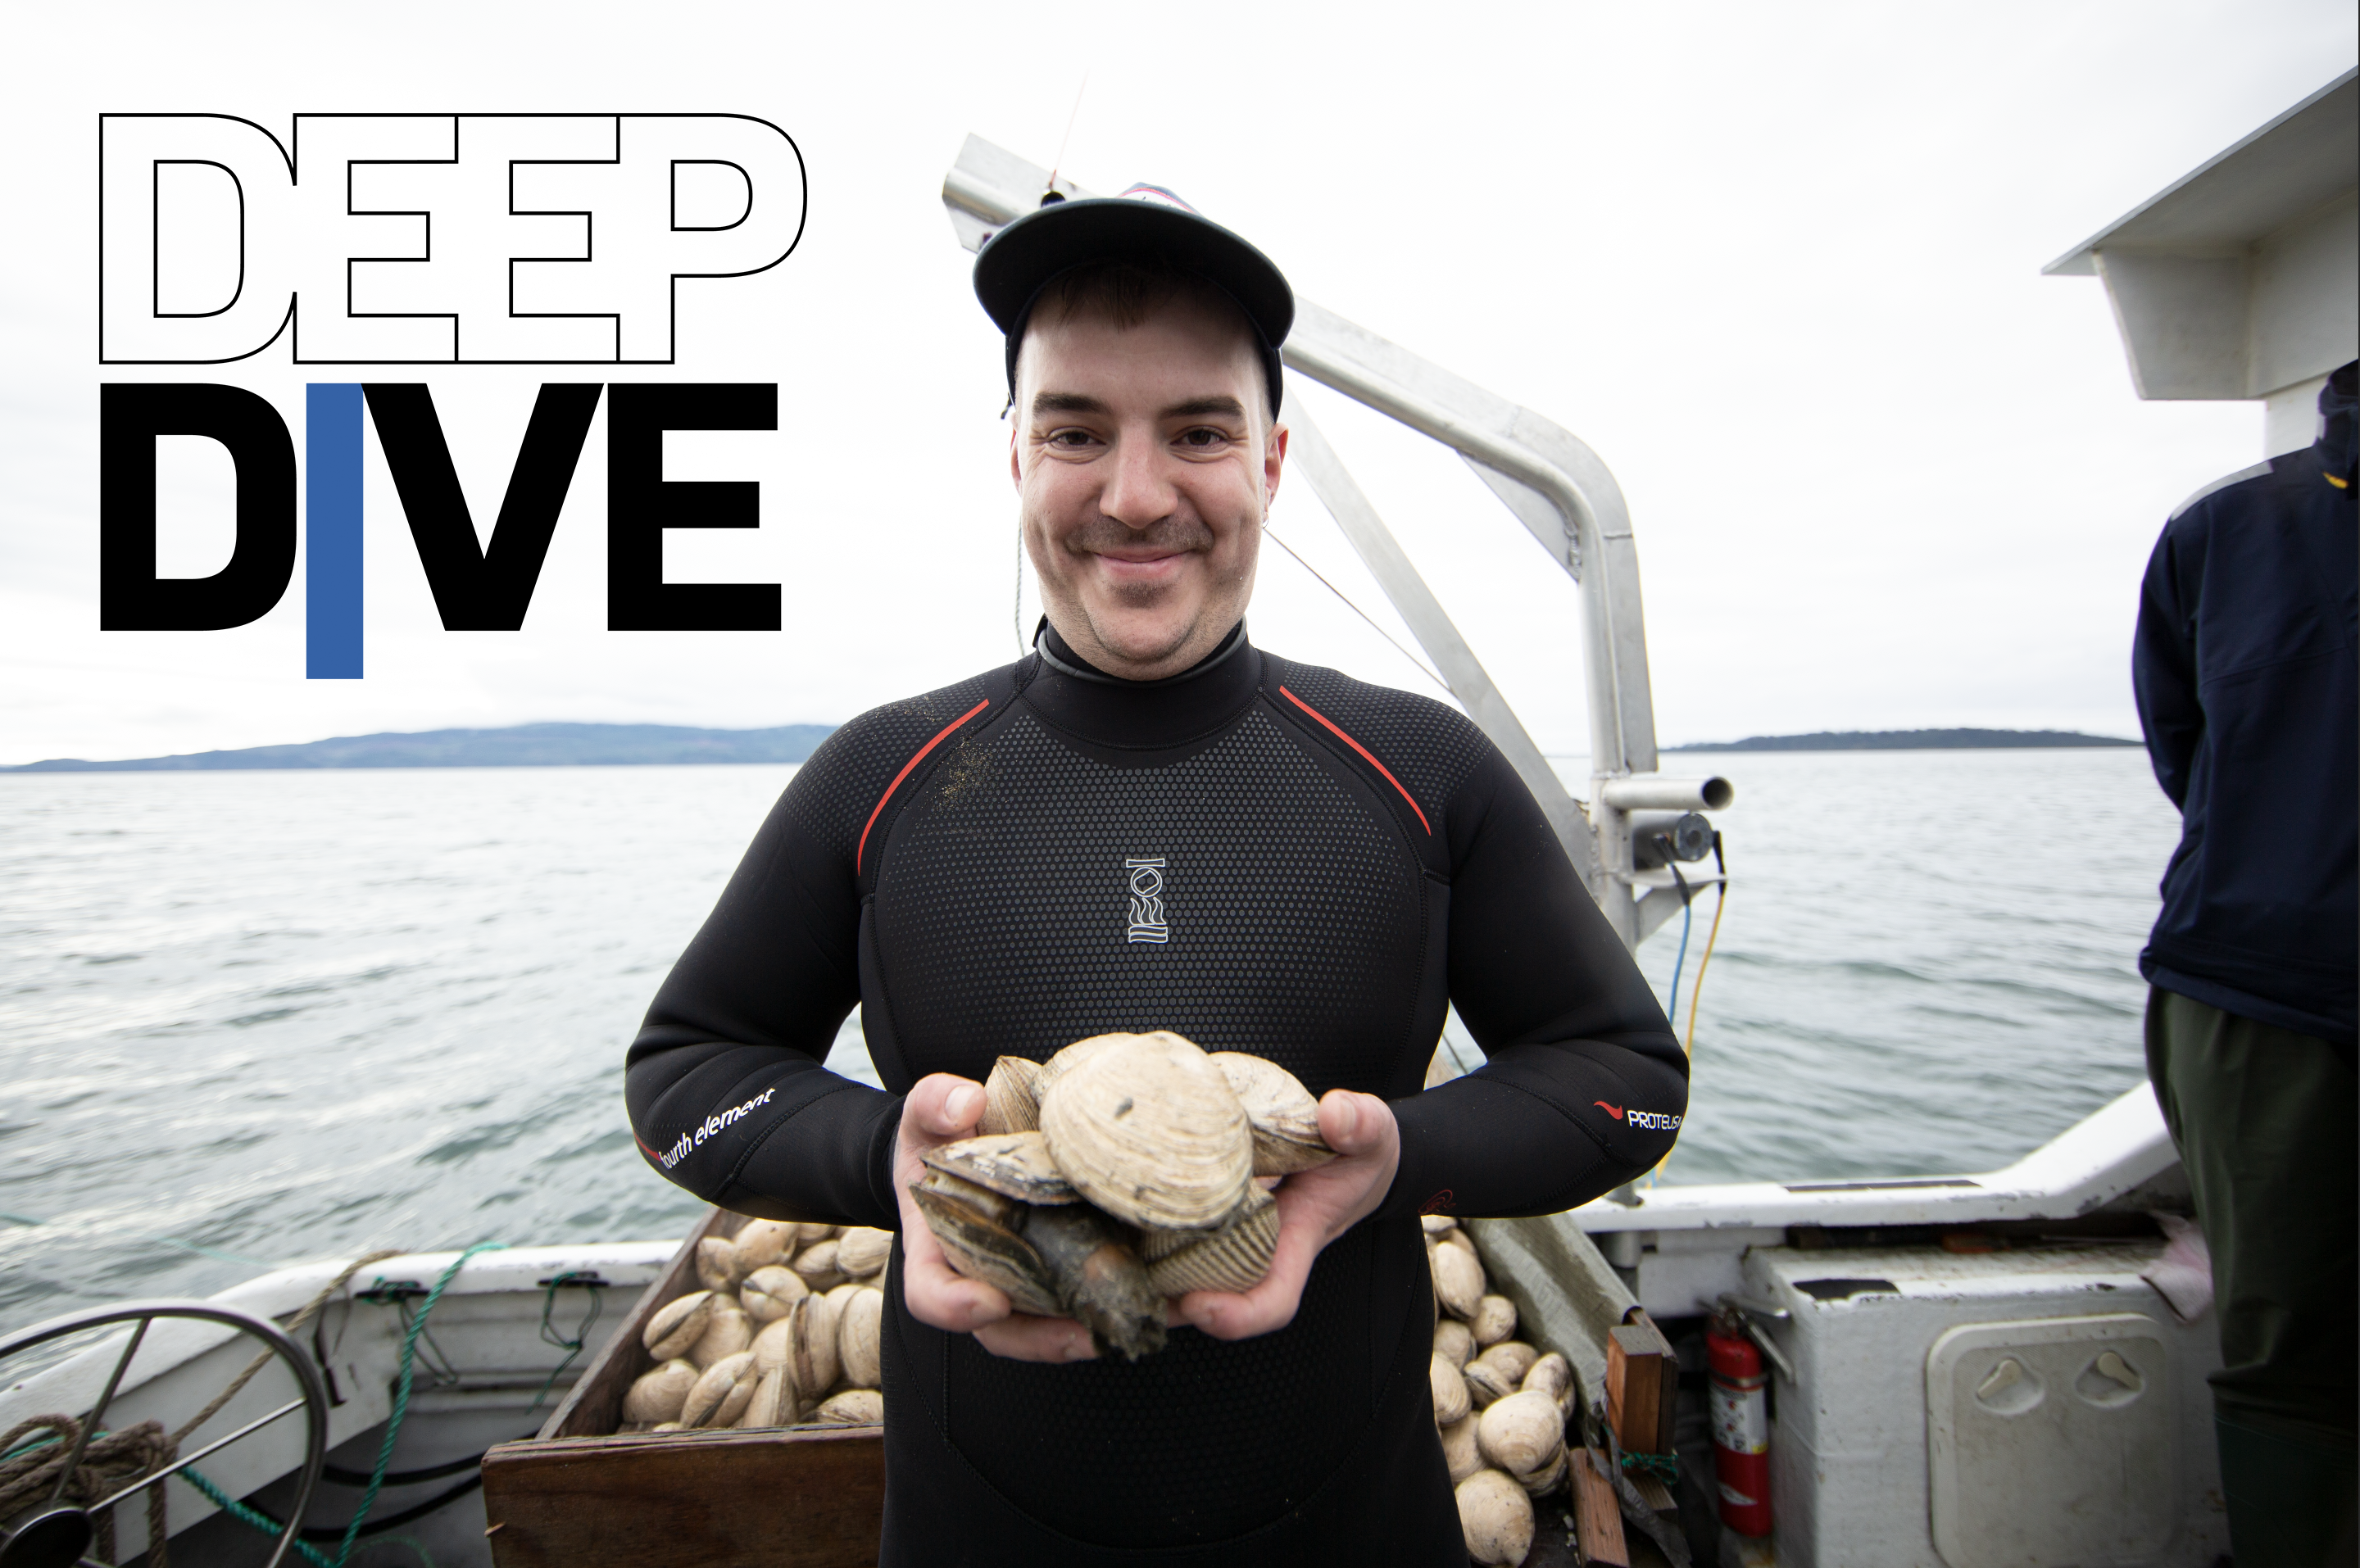 Jacob Harth, dressed in a wetsuit, stands on a fishing boat in Tillamook Bay. He's holding a big handful of butter clams with both hands.